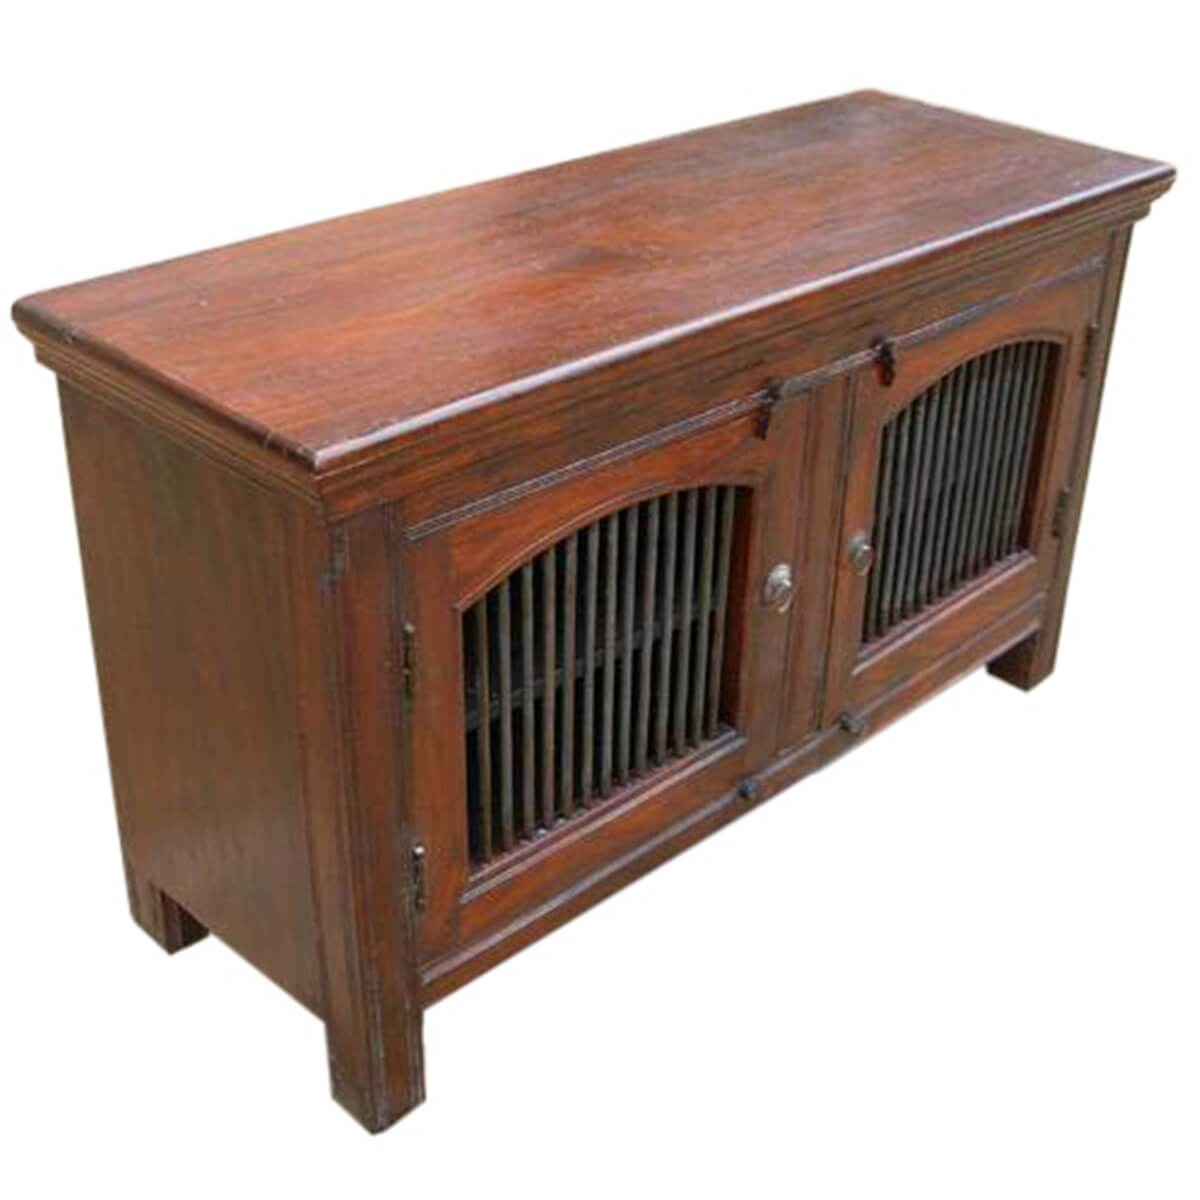 Wade solid wood wrought iron door buffet cabinet